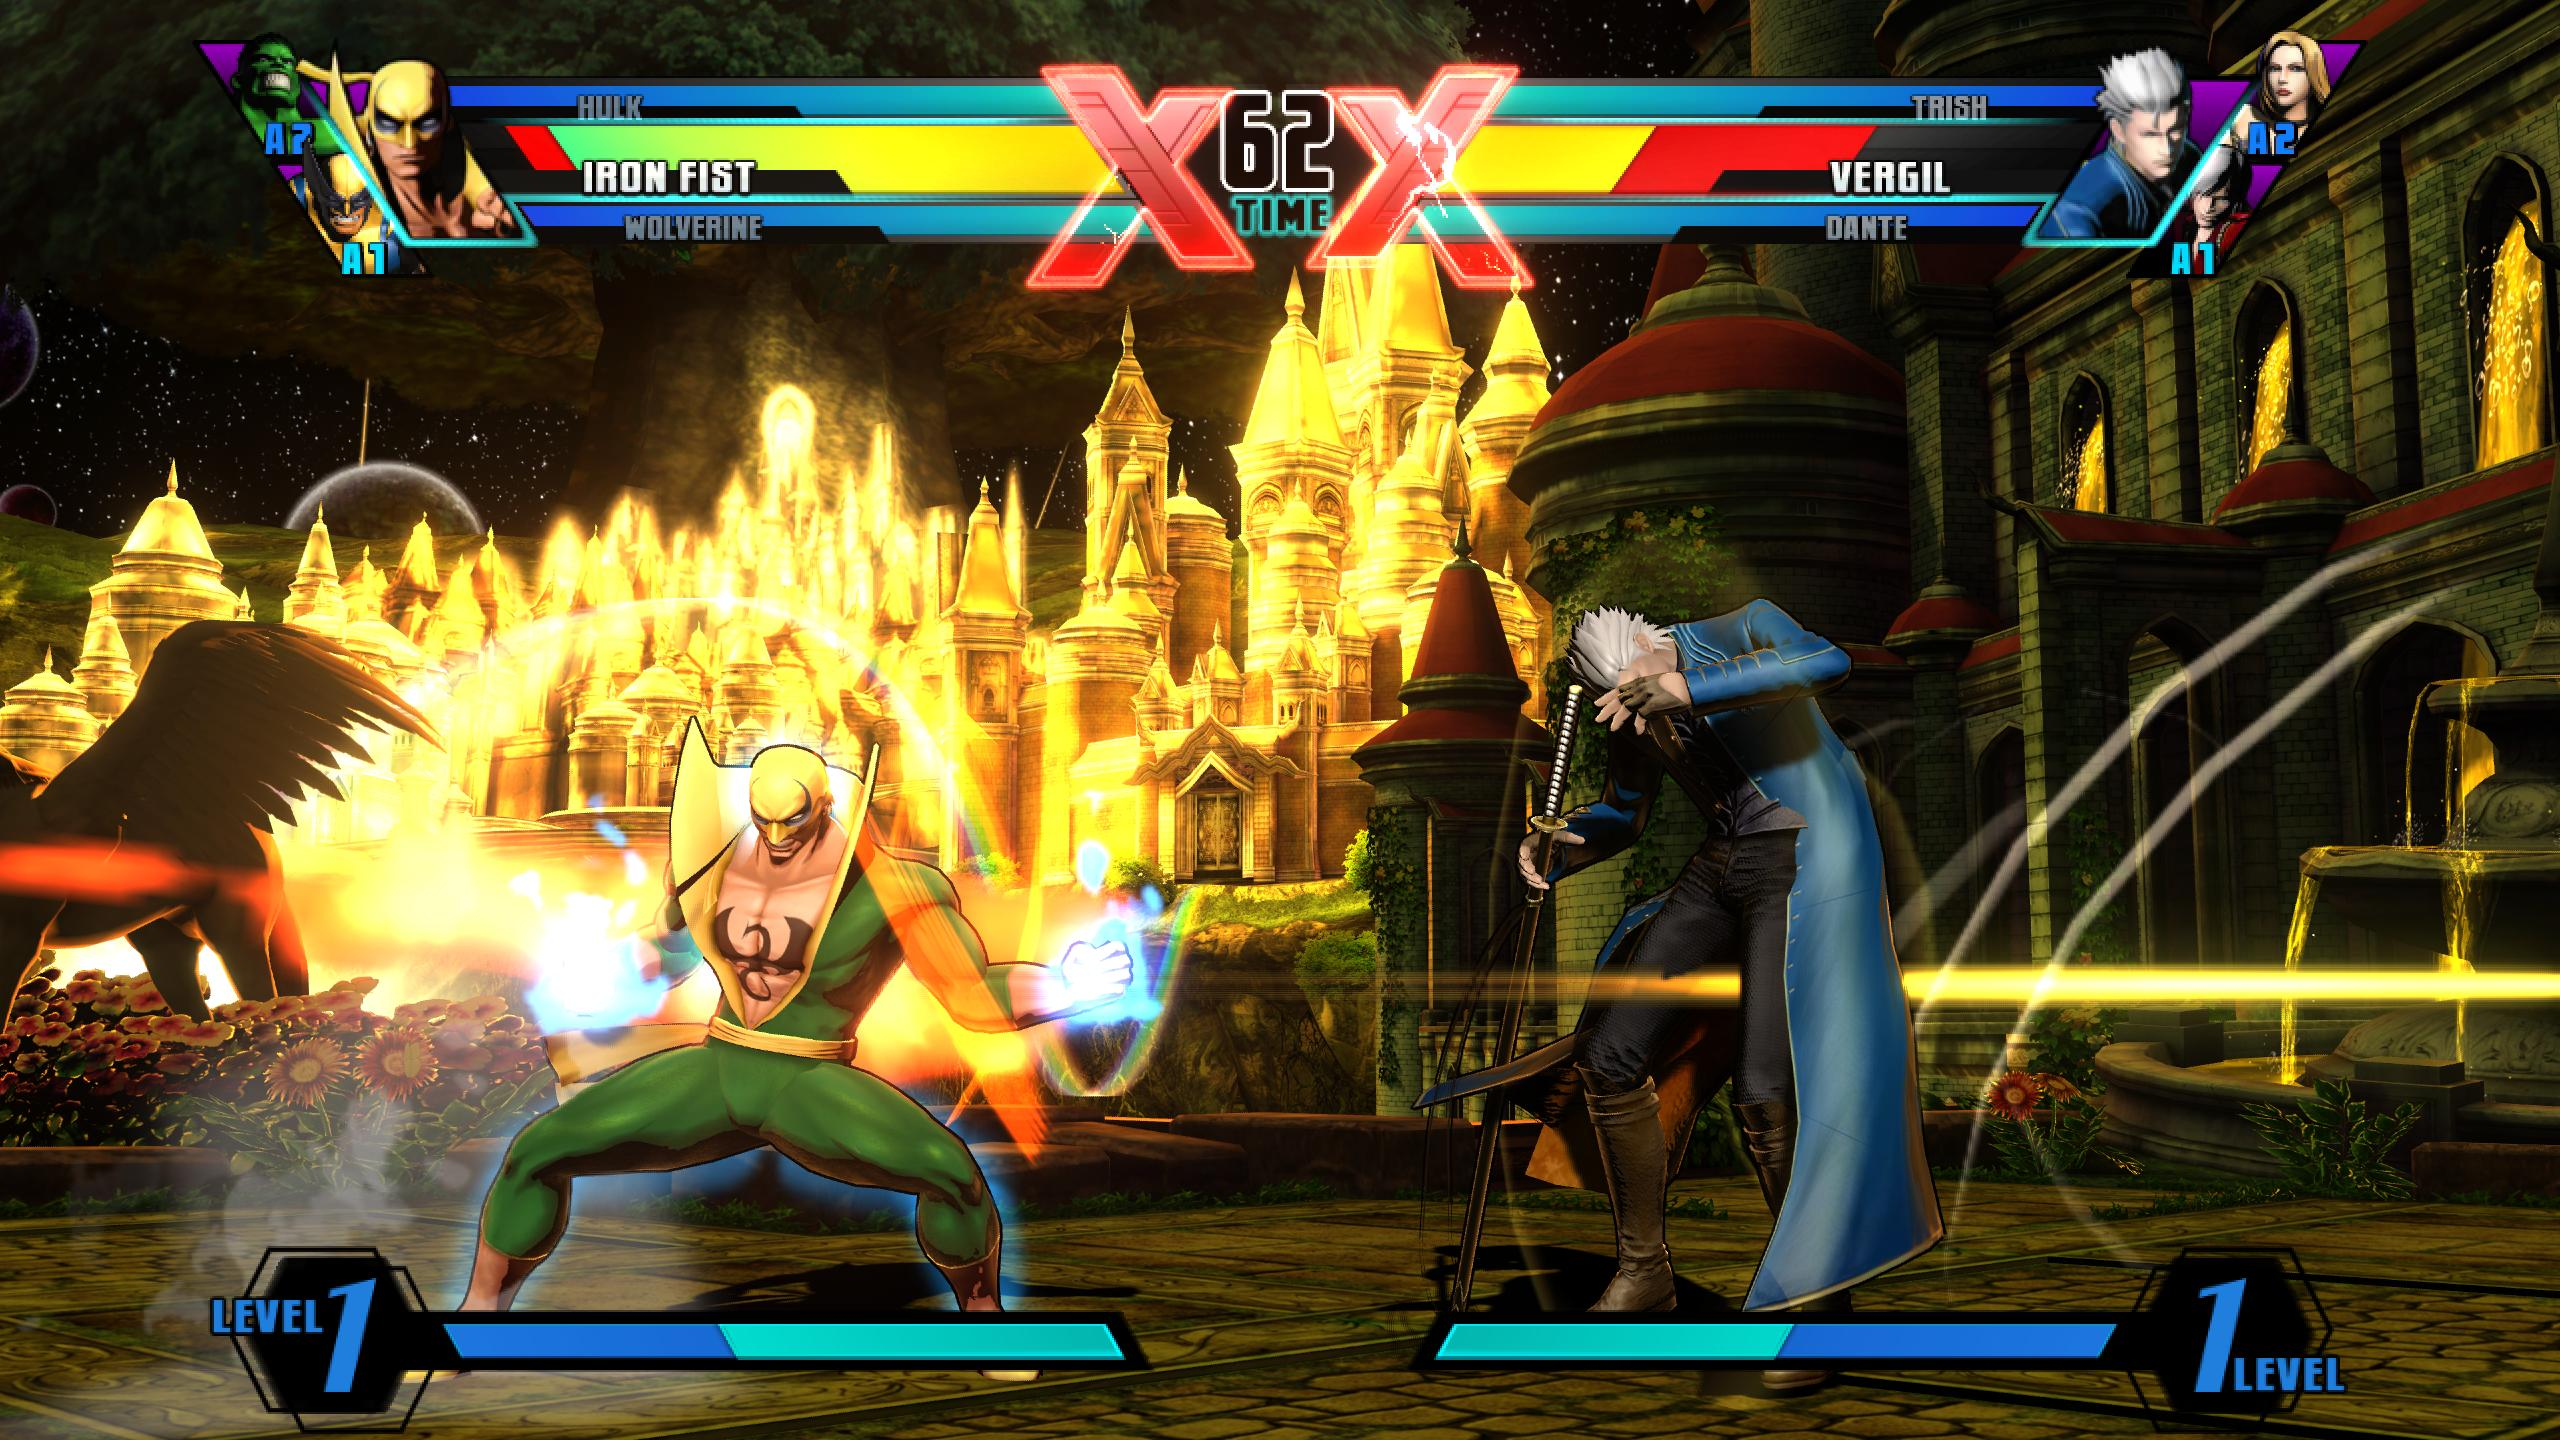 Vergil dans Ultimate Marvel vs. Capcom 3 6151114540_94e77641a4_o